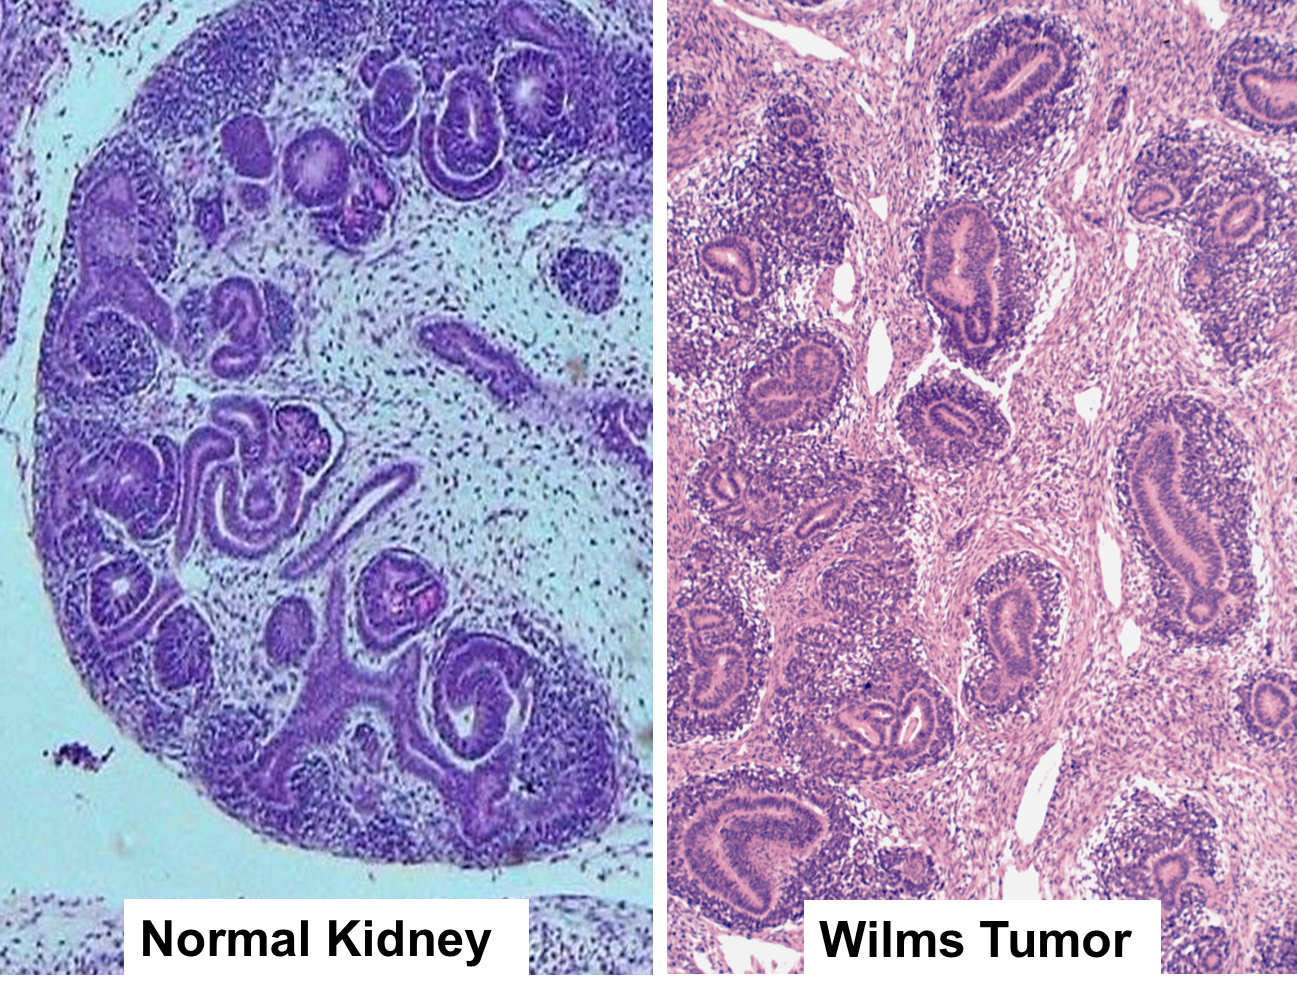 Discovery Of Novel Mutations In A Subtype Of Wilms Tumor Reveals